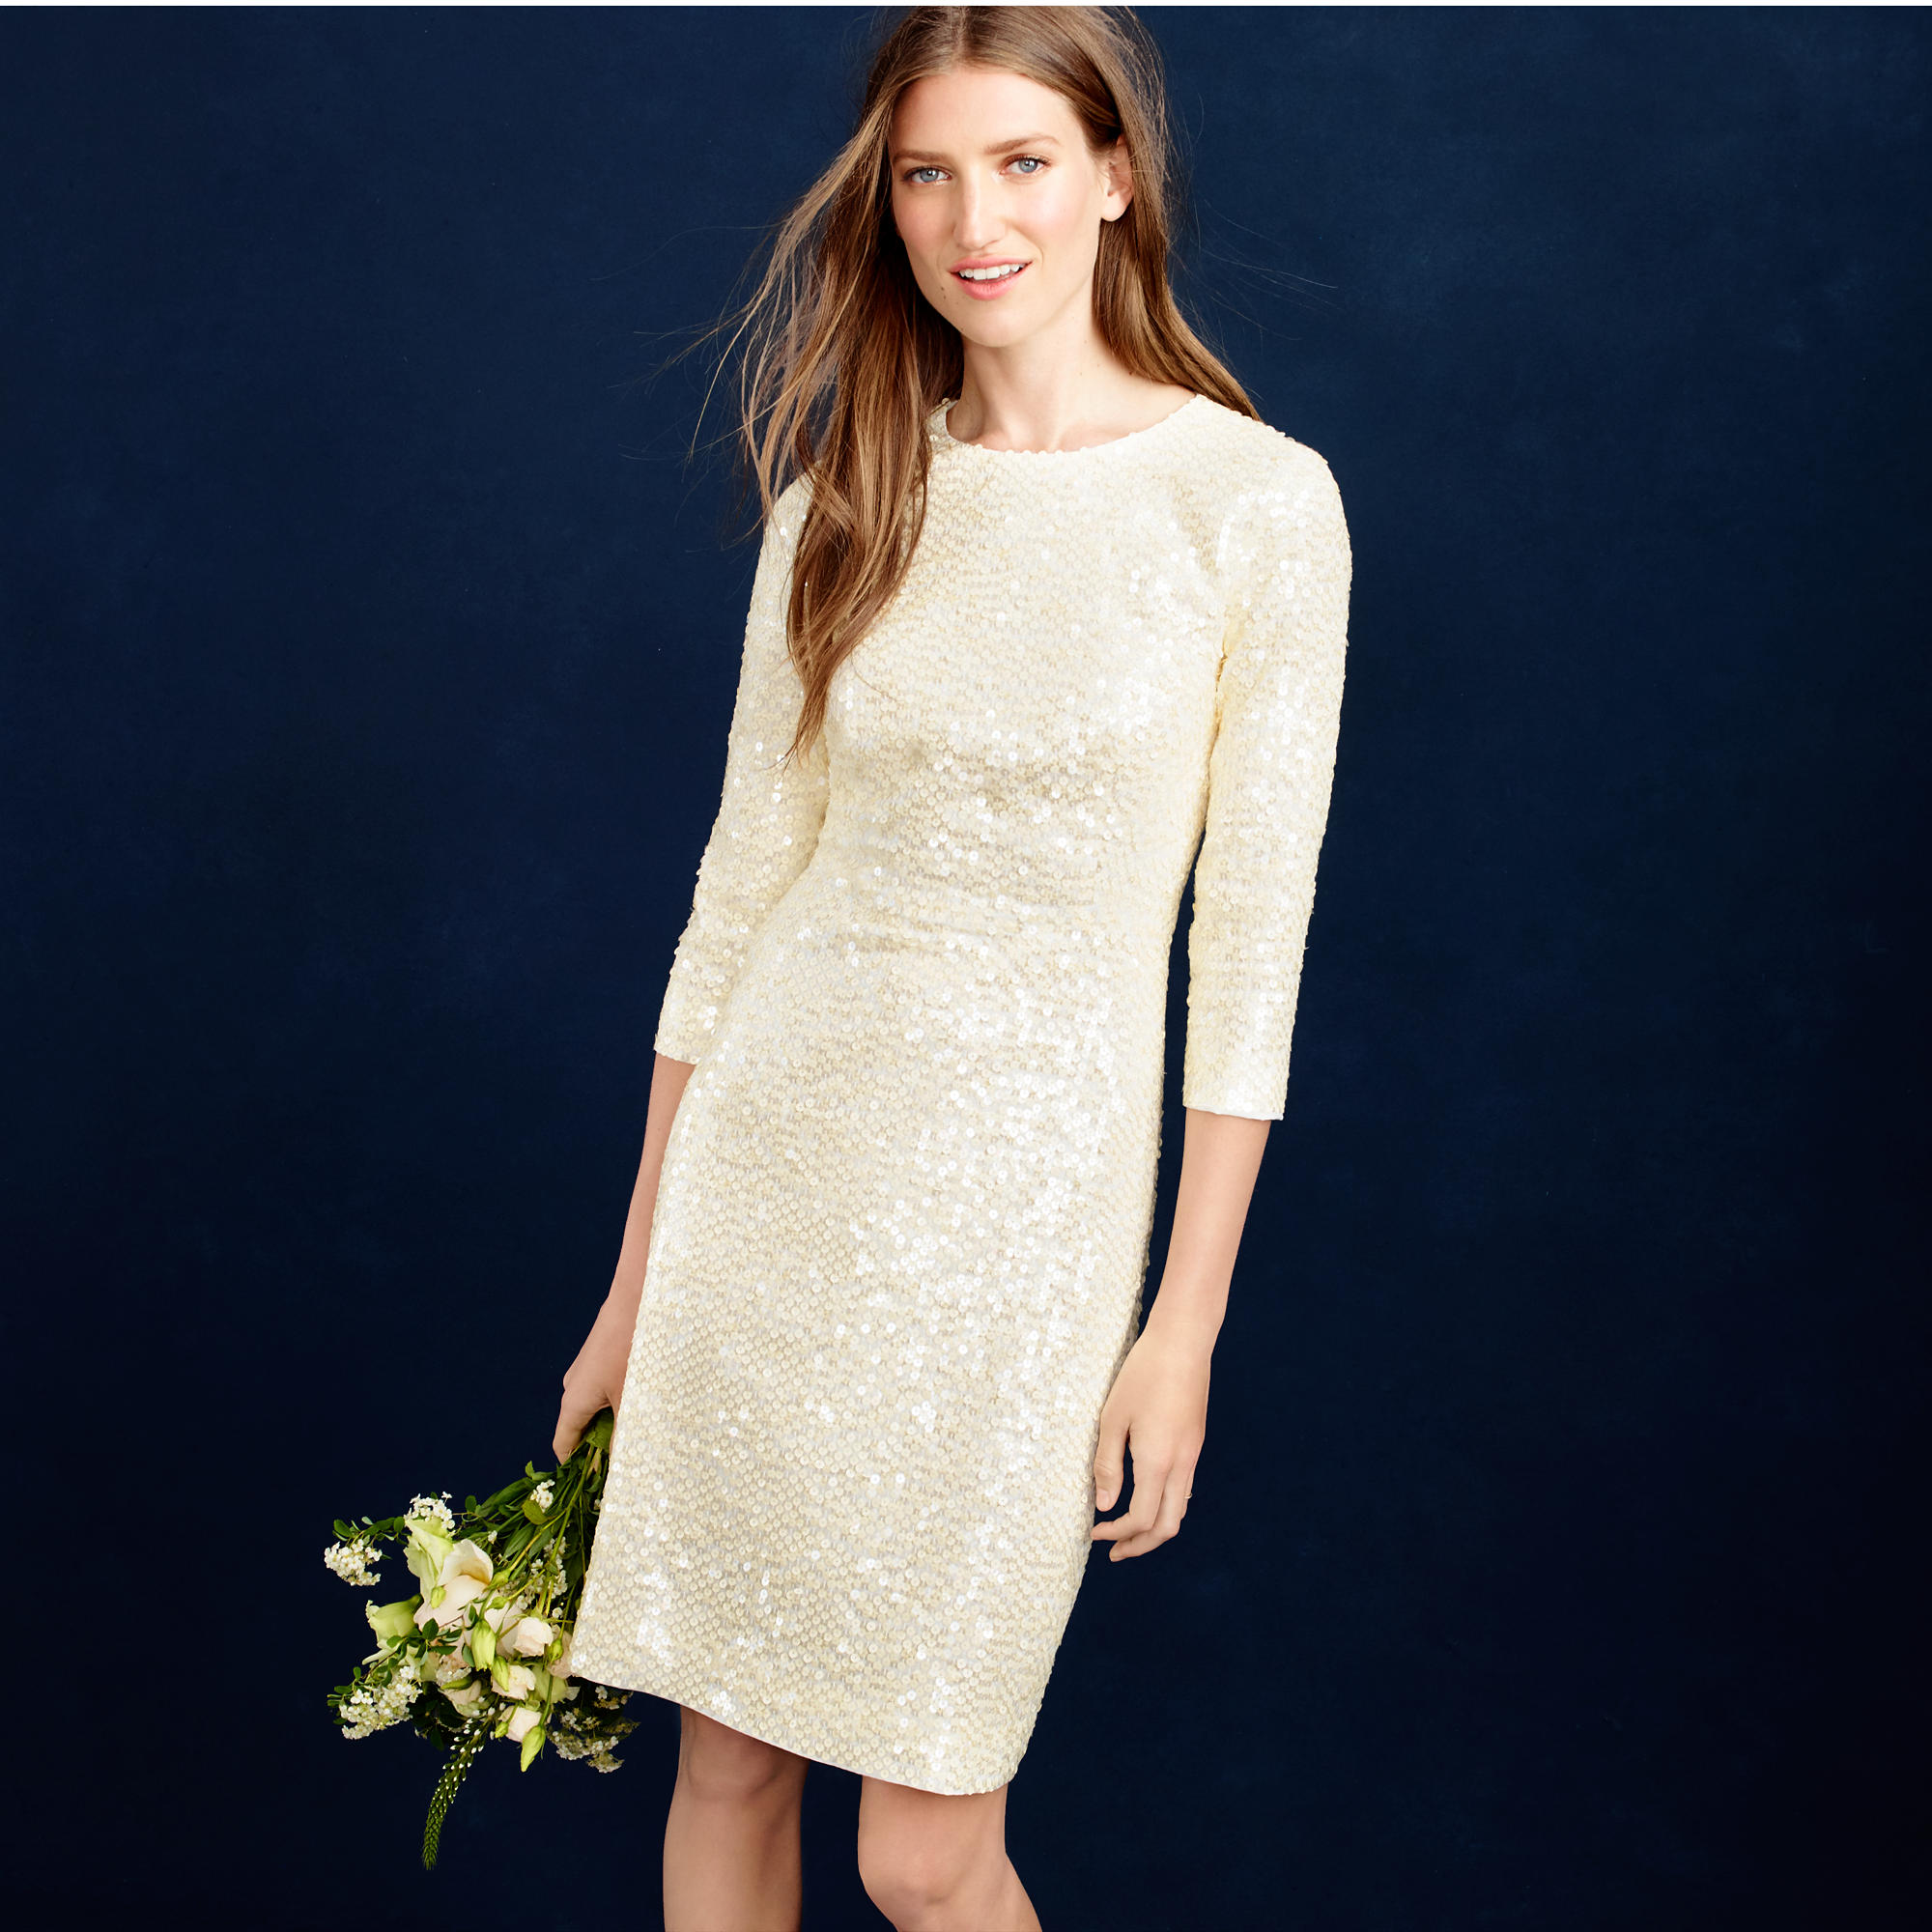 5 J.Crew Gowns Perfect For A Winter Wedding